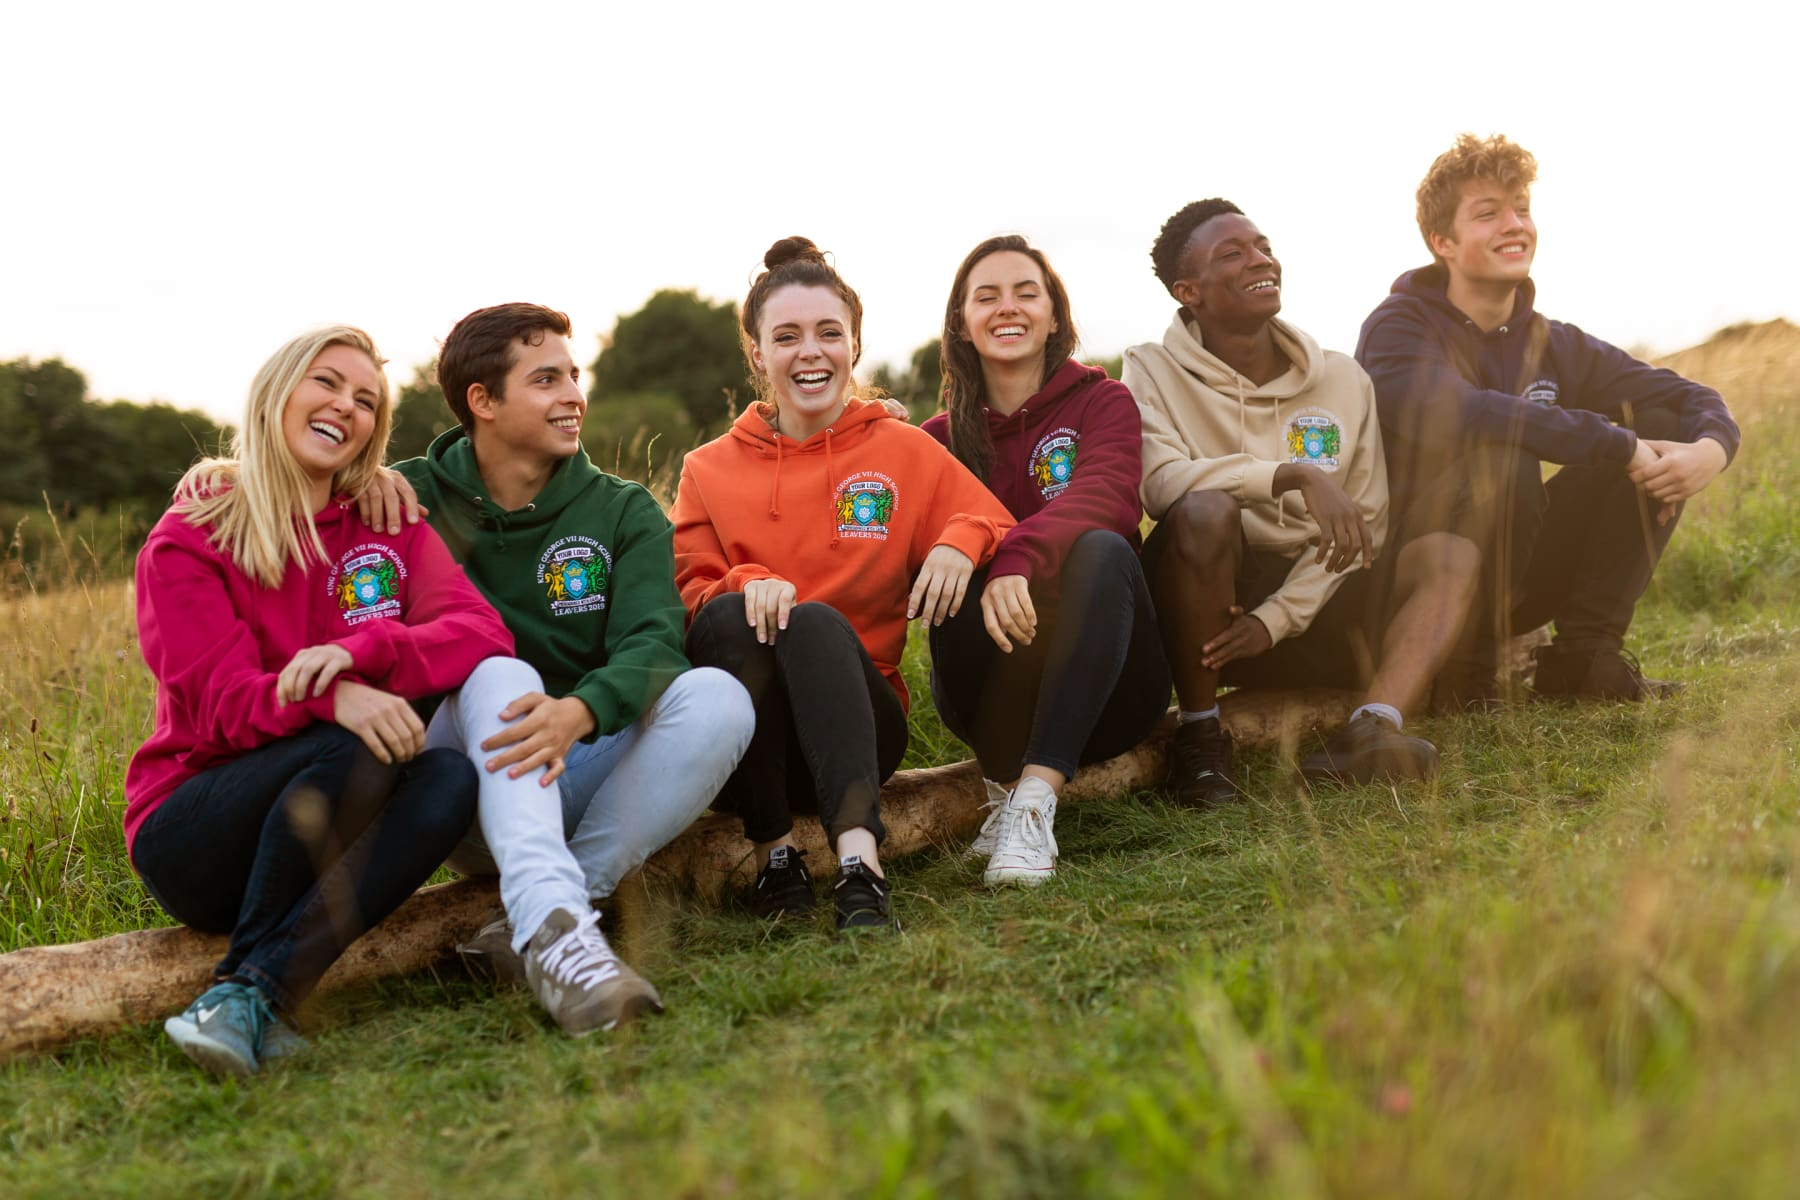 leavers-hoodies-group-embroidered-landscape.jpeg